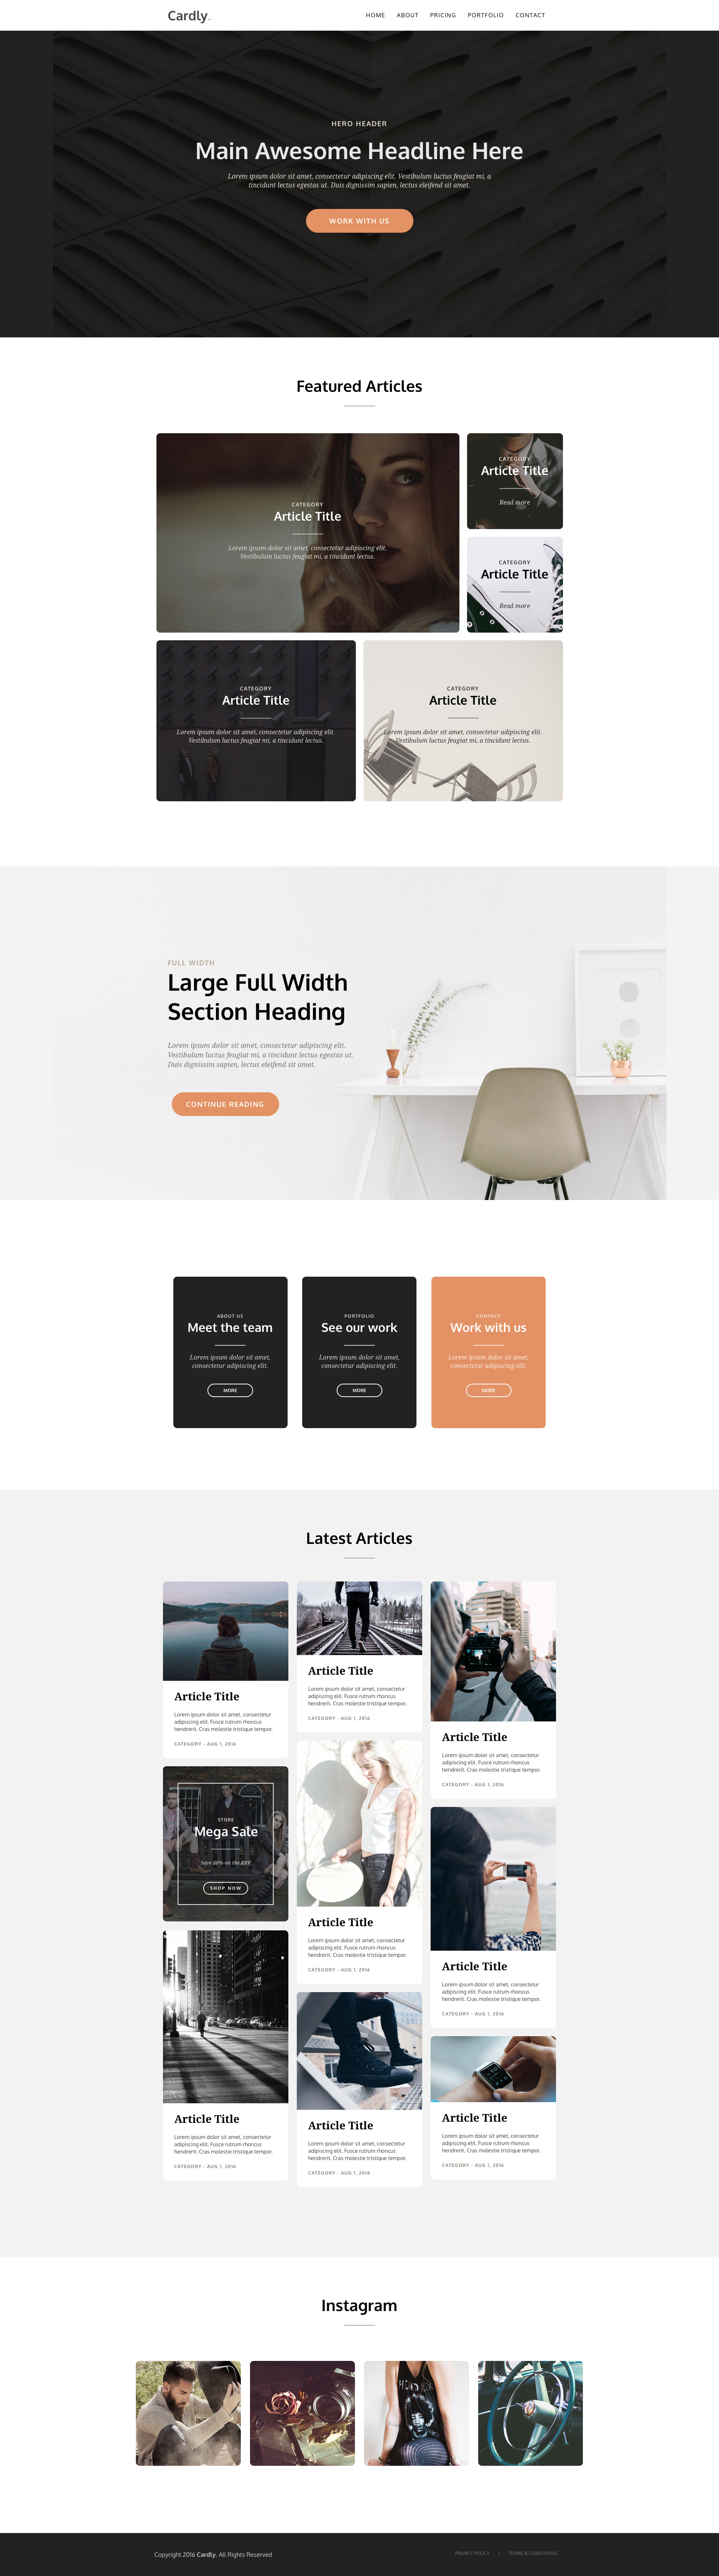 cardly free responsive html5 masonry landing page template htmltemplates co. Black Bedroom Furniture Sets. Home Design Ideas